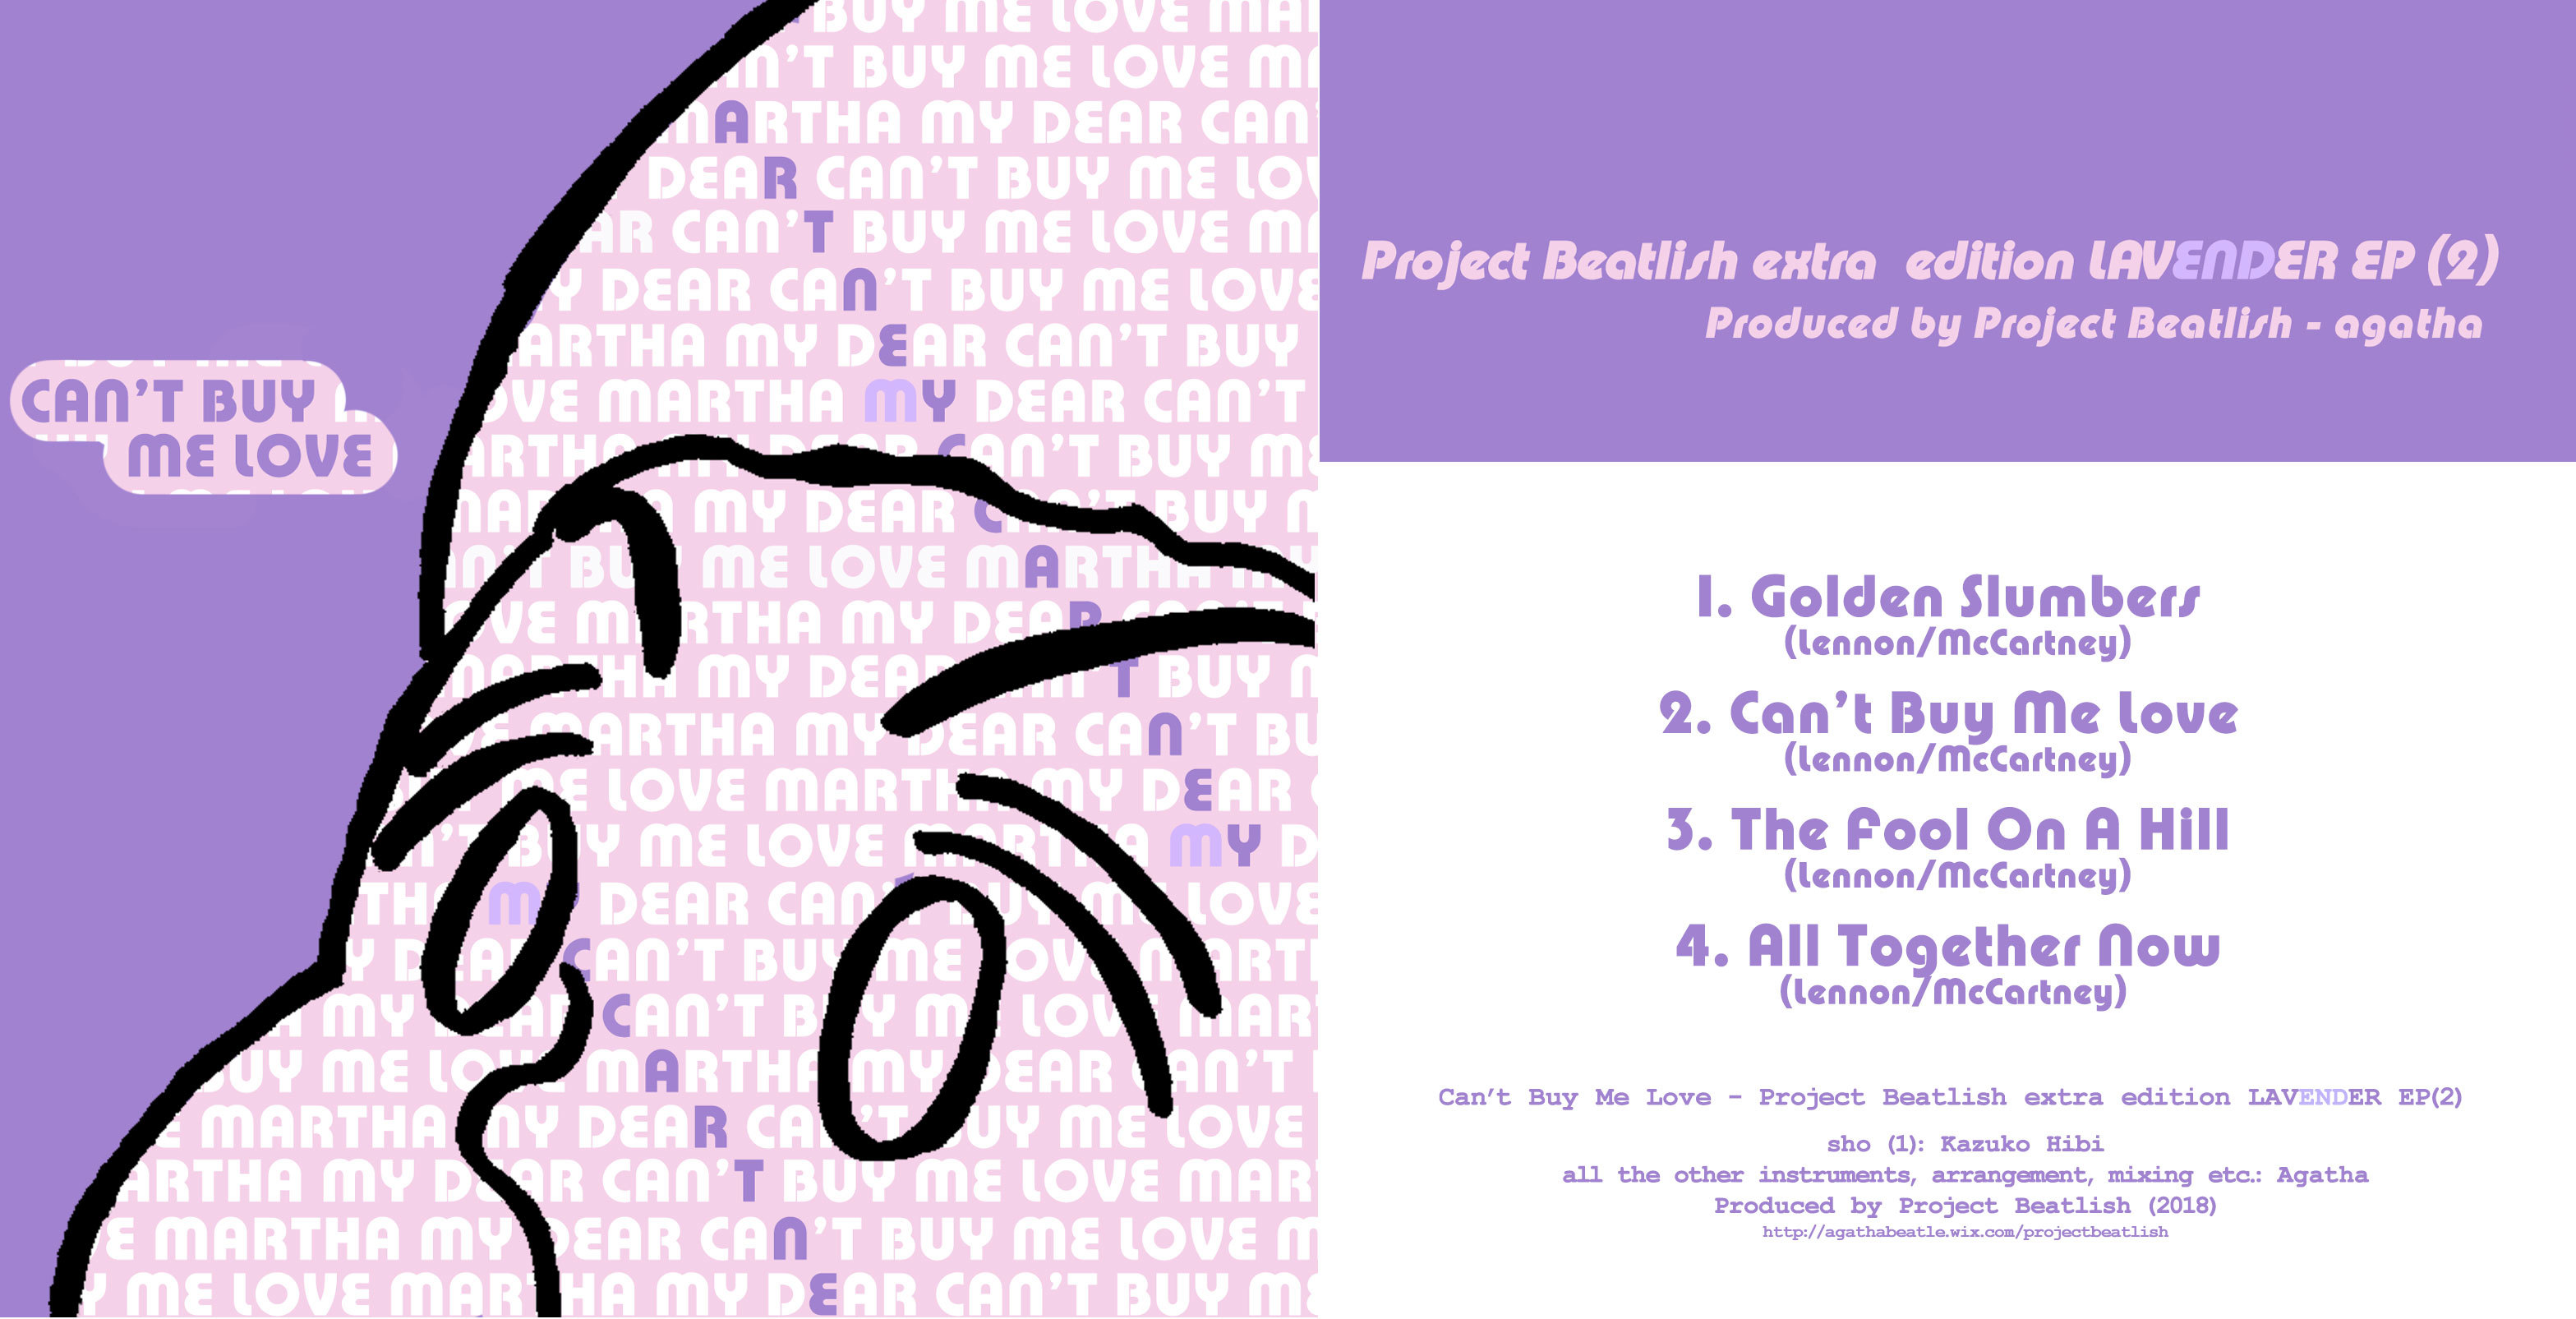 Project Beatlish extra edition - LAVENDER EP (1&2)_e0303005_19550574.jpg